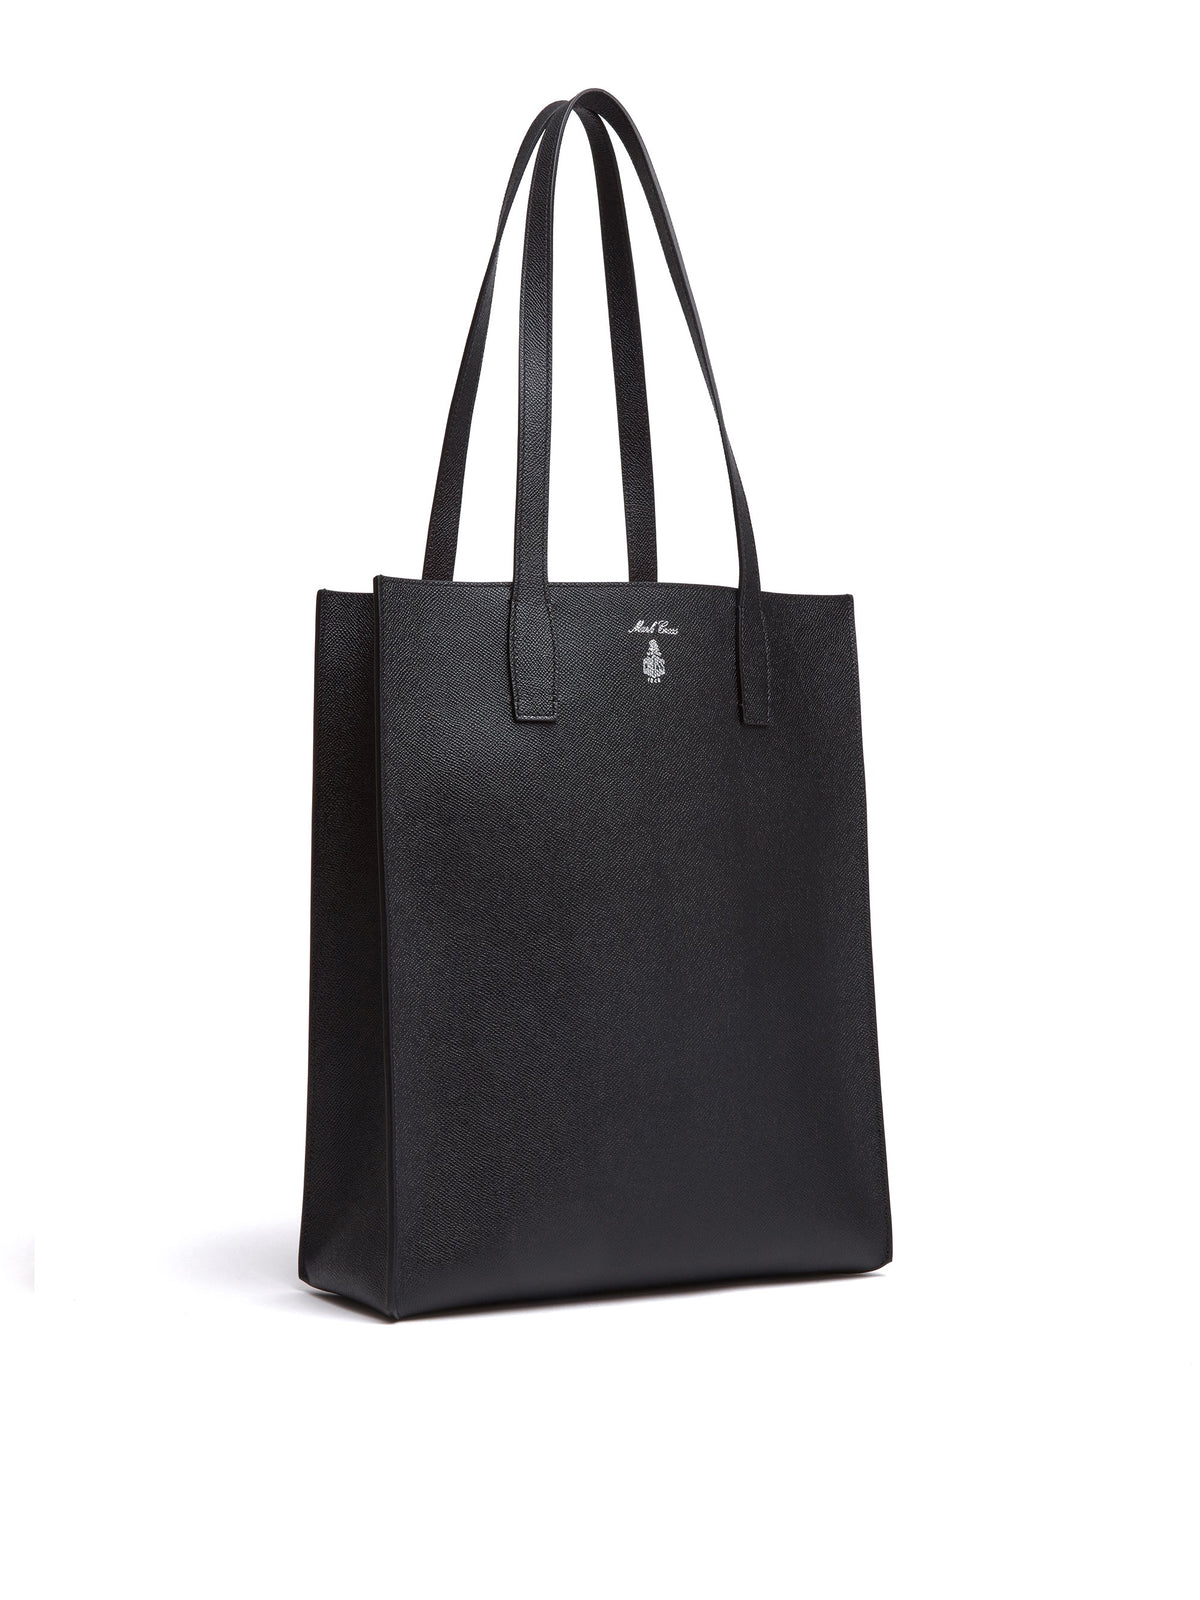 Mark Cross Fitzgerald North South Leather Tote Saffiano Black Side